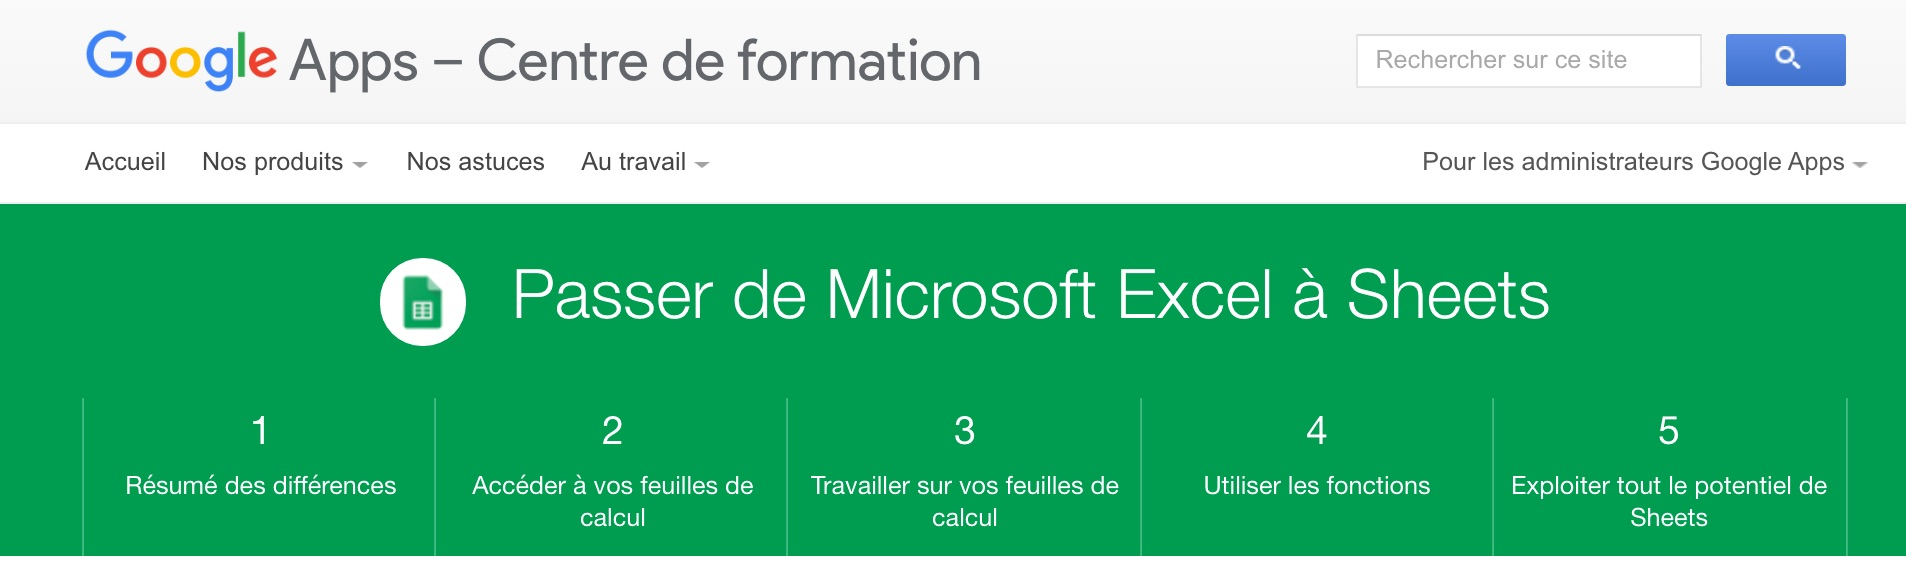 passer_de_microsoft-excel_a_sheets_-_centre_de_formation_google-apps